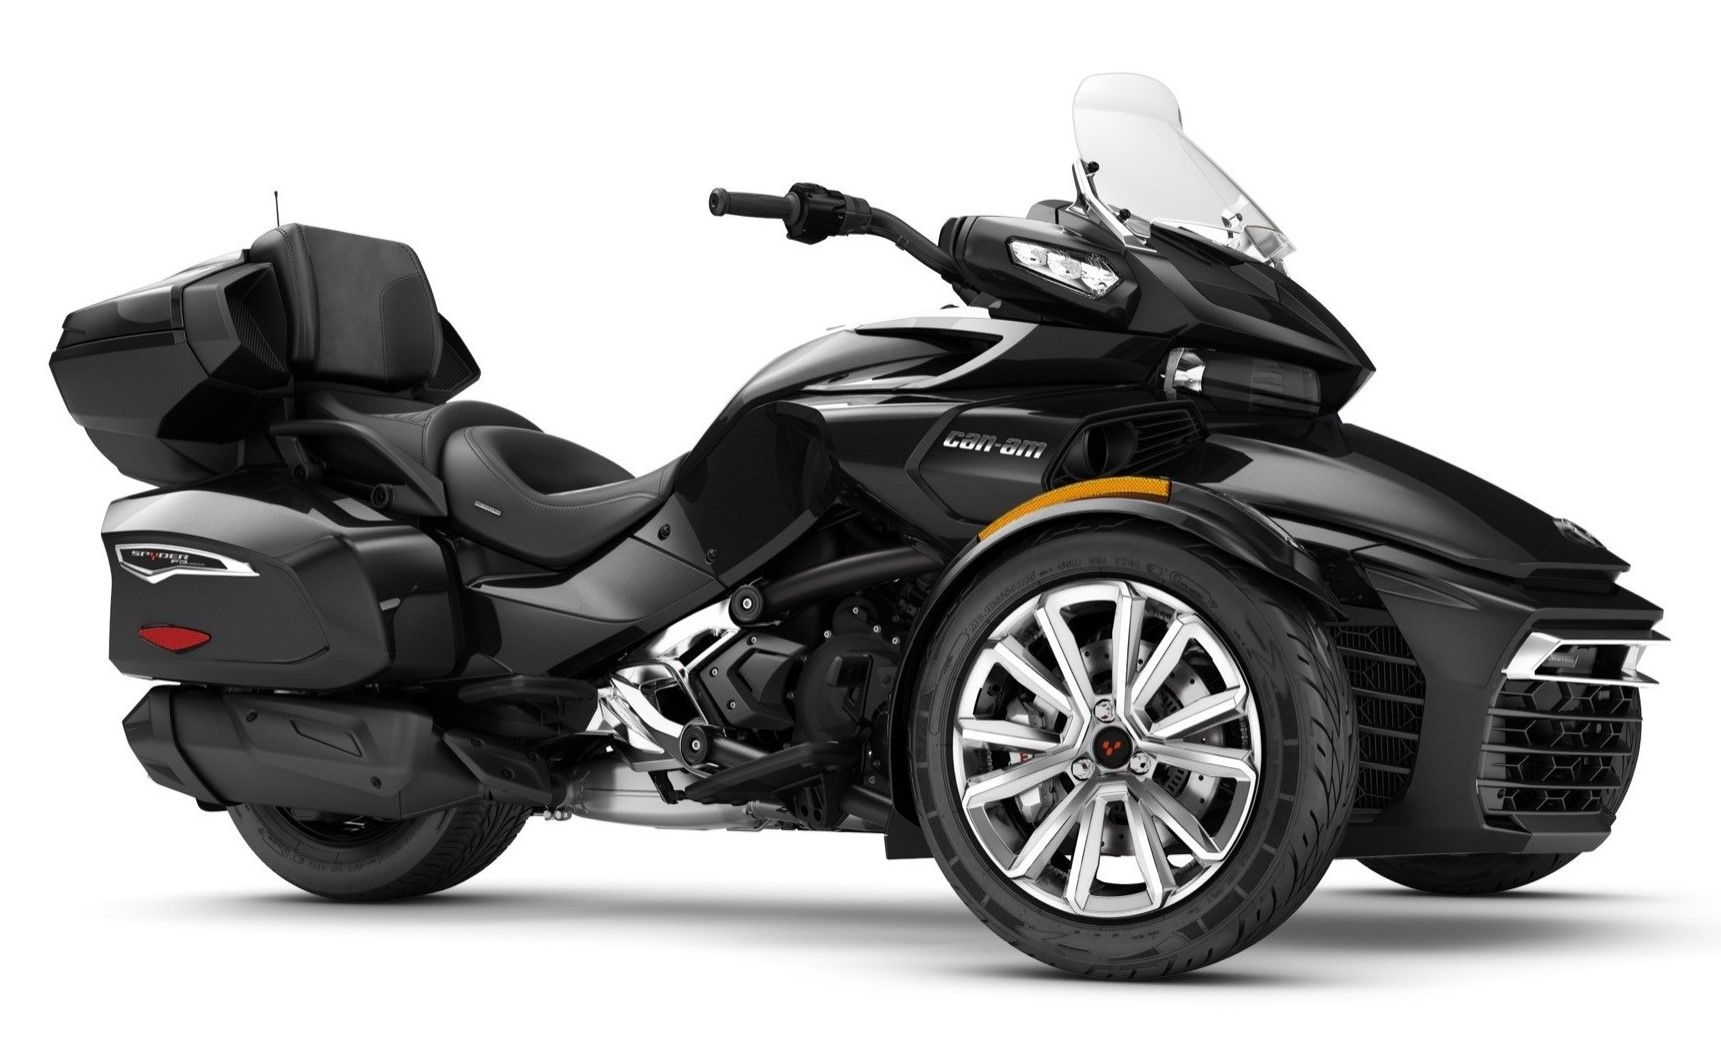 2017 can am spyder f3 limited cruiser touring with a starting price of